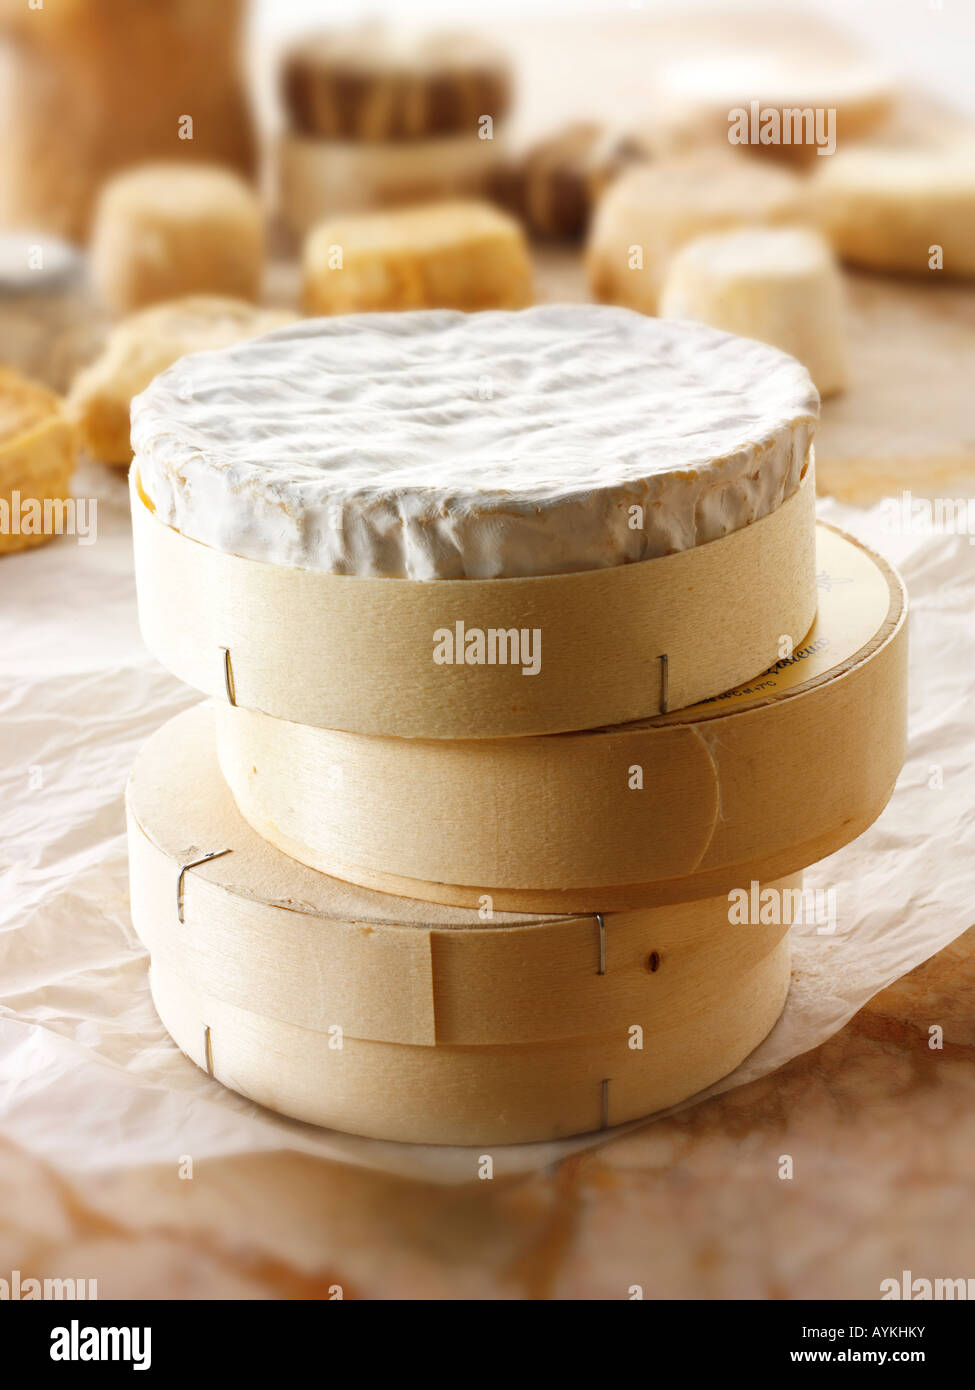 French Regional cheeses - Camembert - Stock Image